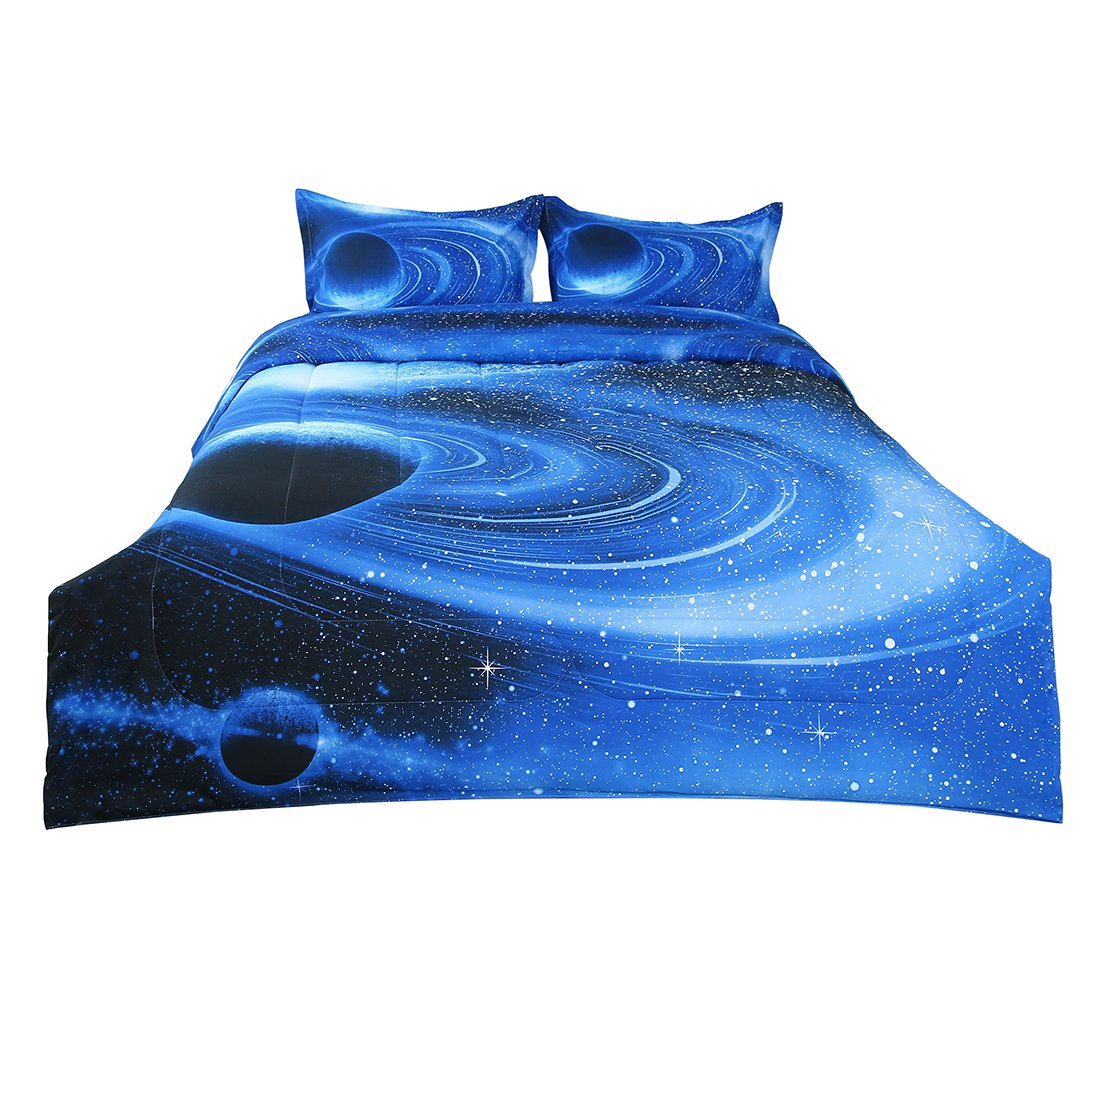 uxcell Full/Queen 3-piece Galaxies White Blue Comforter Sets - 3D Space Themed - All-season Down Alternative Quilted Duvet - Reversible Design - Includes 1 Comforter, 2 Pillow Shams